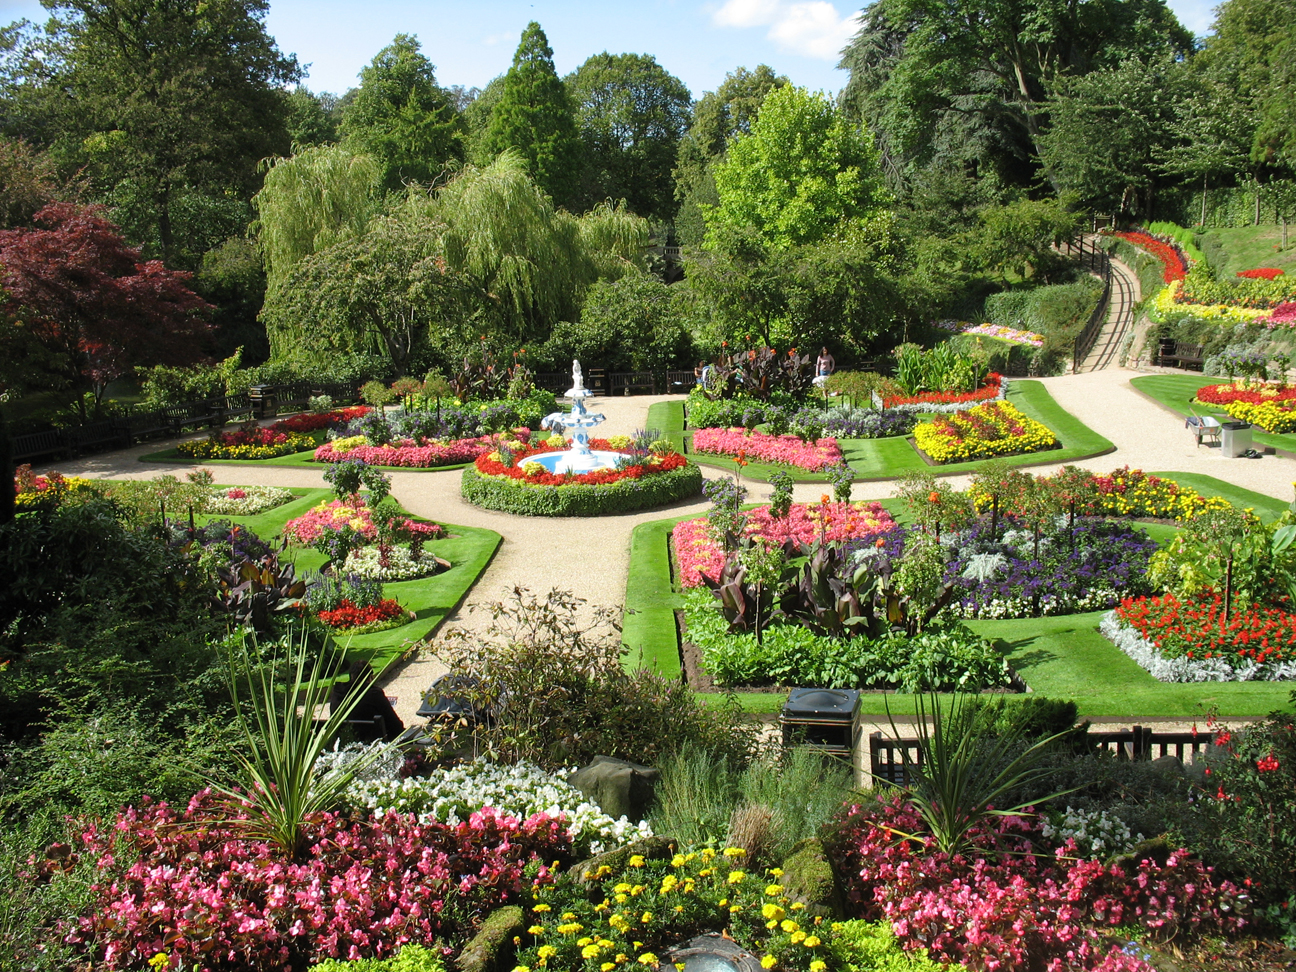 Quarry Park and The Quarry, Shrewsbury